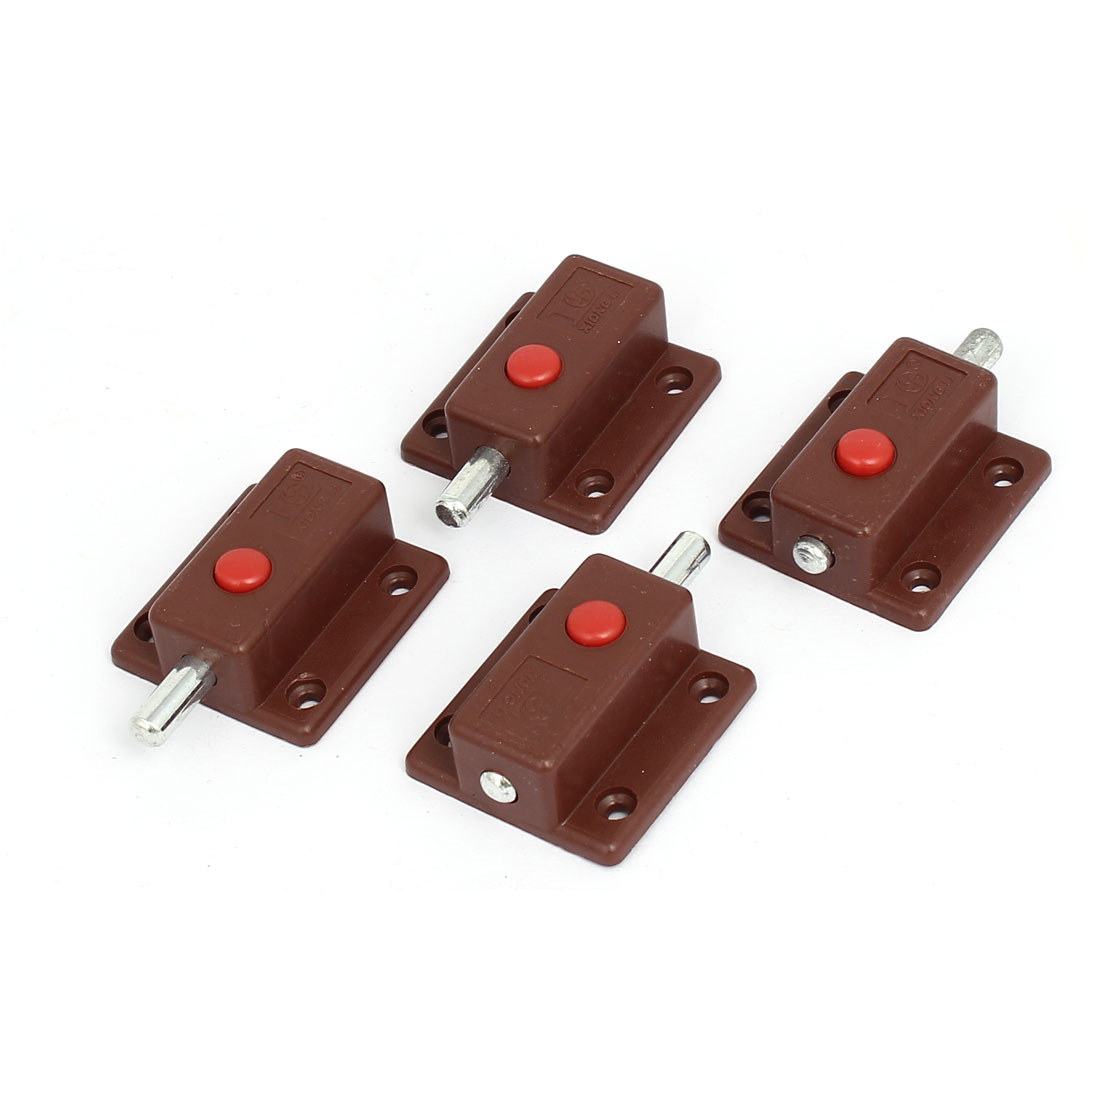 Cupboard Cabinet Door Shell Press Button Automatic  Bolts Latch Lock 4pcs